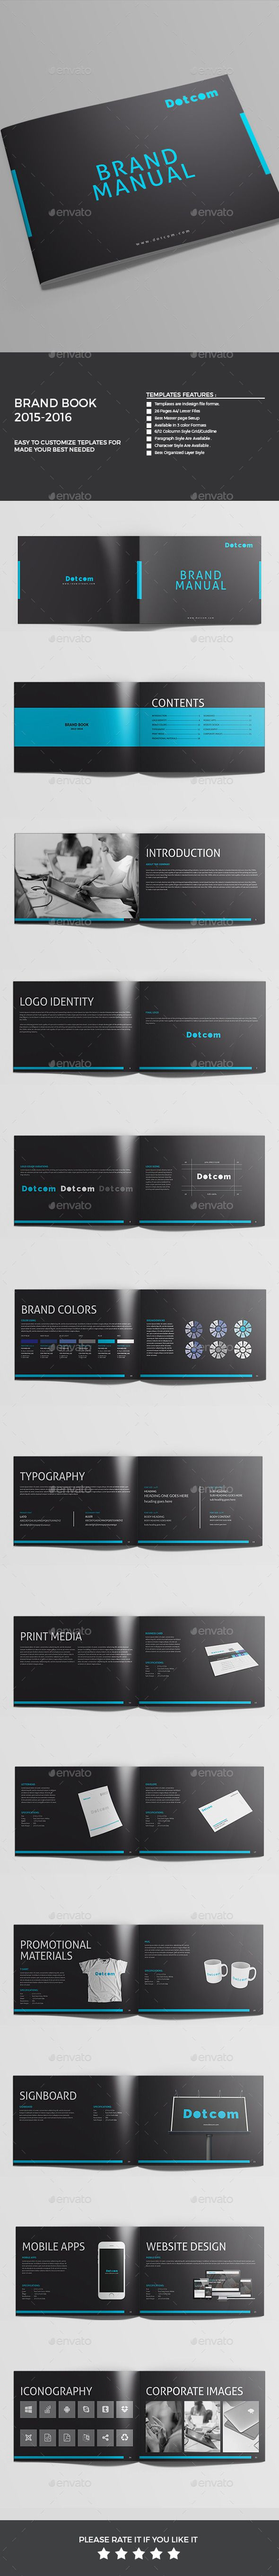 Brand Manual Template #design #printdesign Download: http://graphicriver.net/item/brand-manual/12113523?ref=ksioks